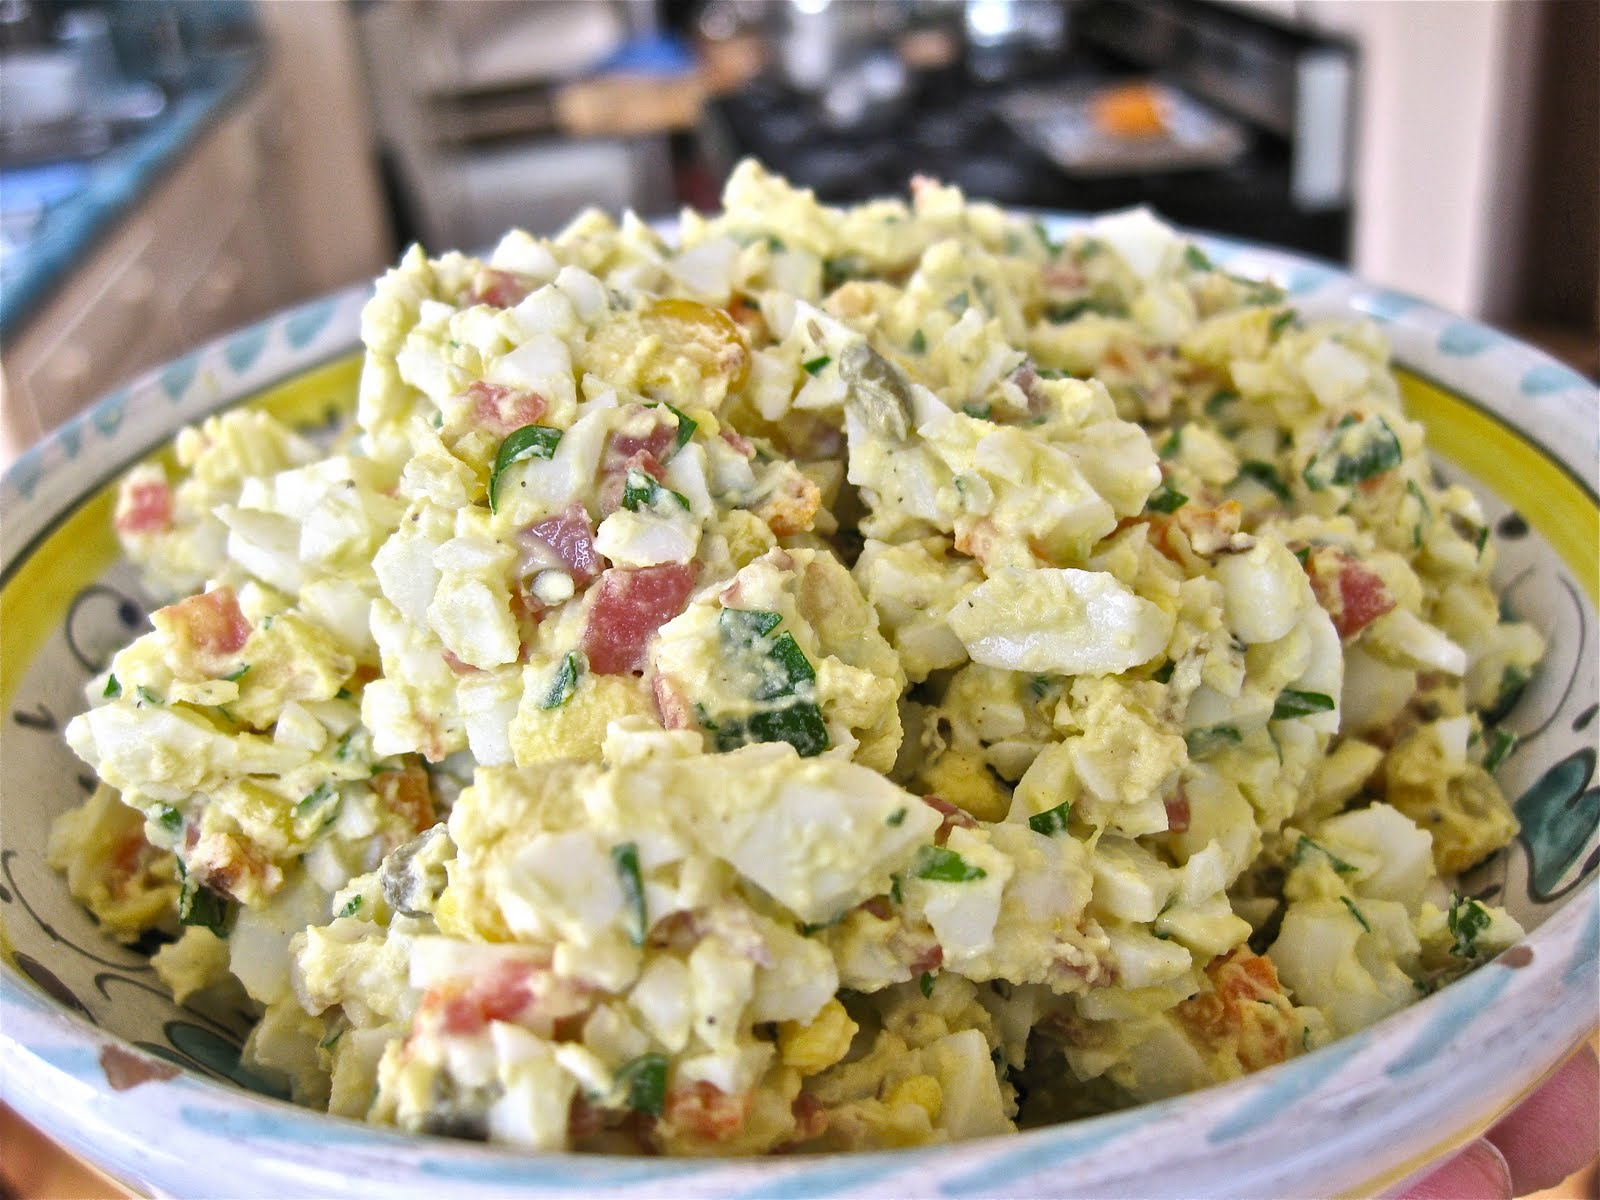 Men Who Like to Cook - David Latt: Egg Salad with Grilled Vegetables ...